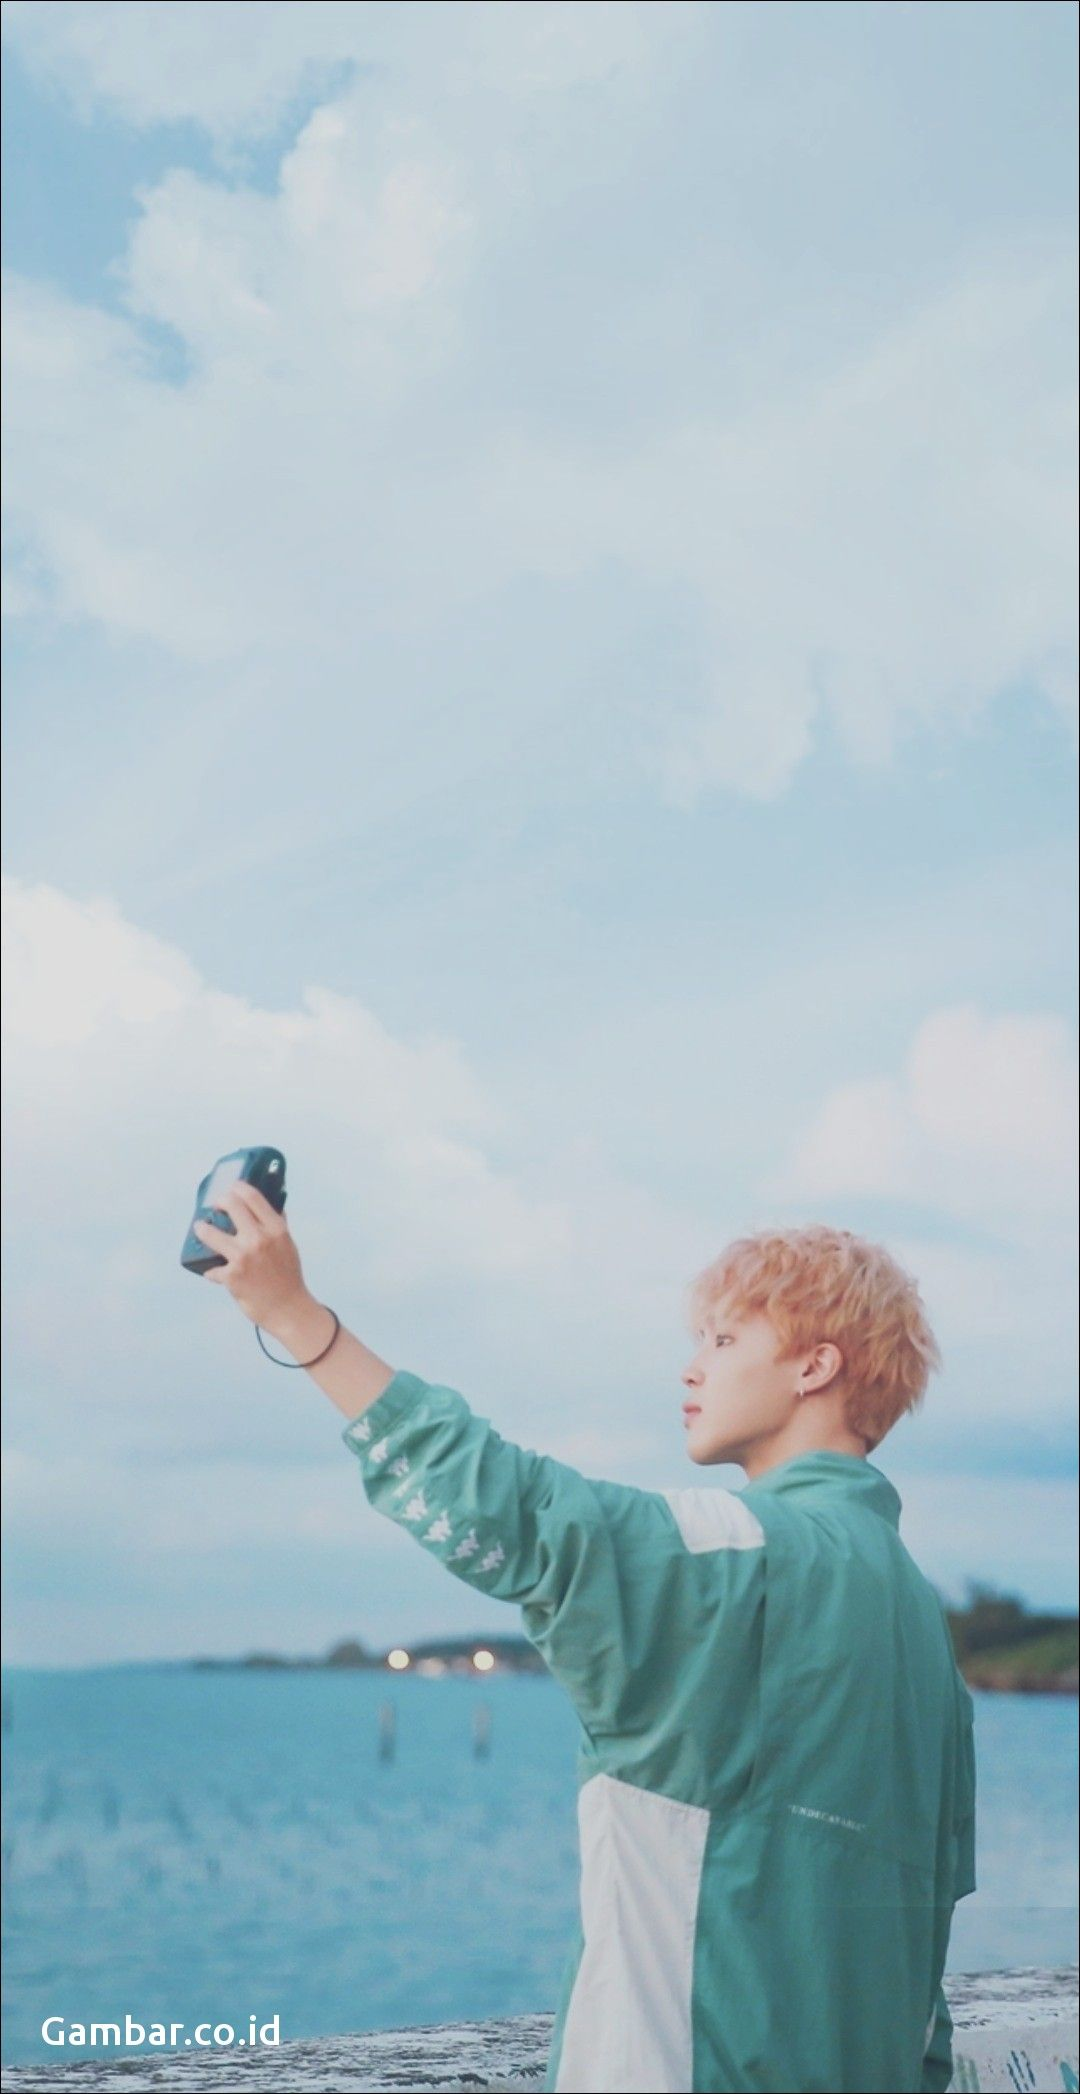 Jimin From BTS Wallpapers   Top Jimin From BTS Backgrounds 1080x2094